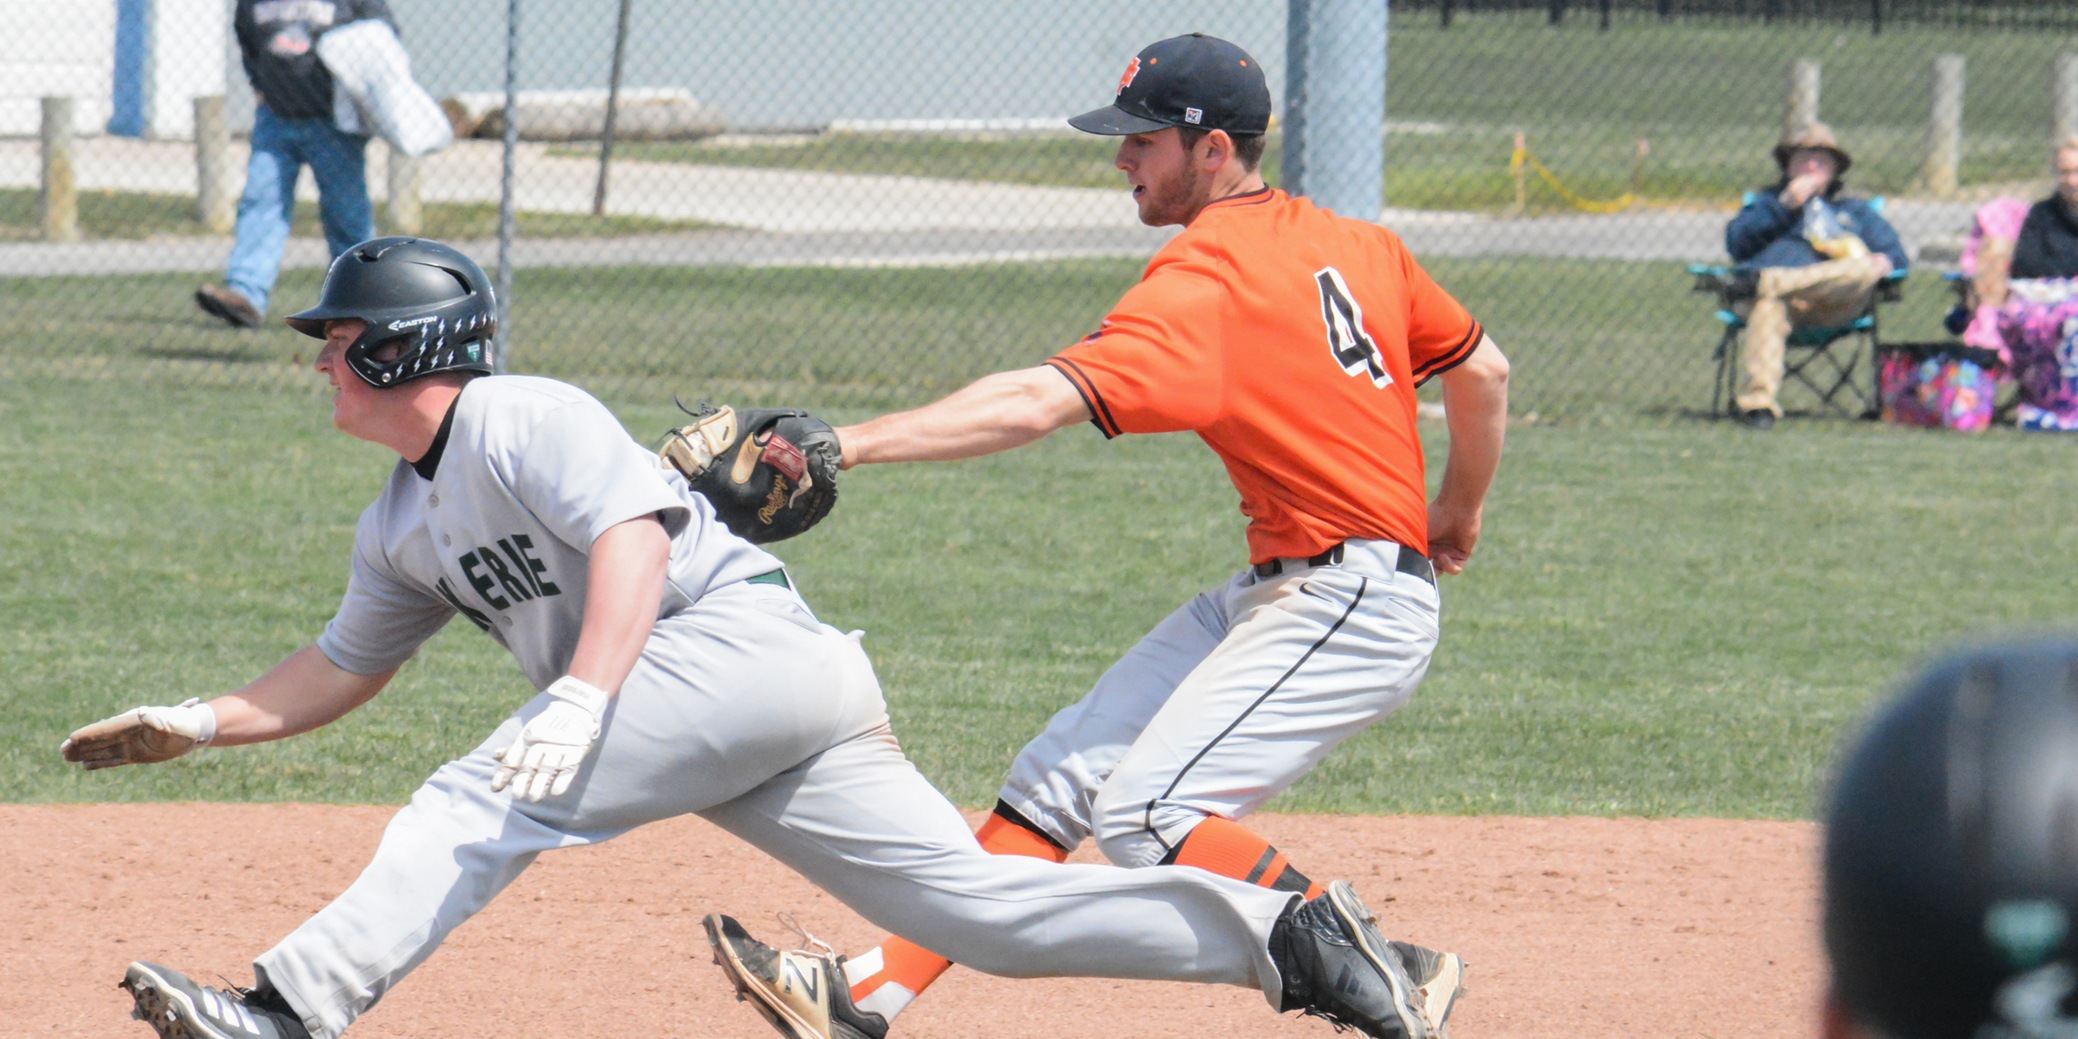 Findlay Blanked by Lake Erie in Series Finale